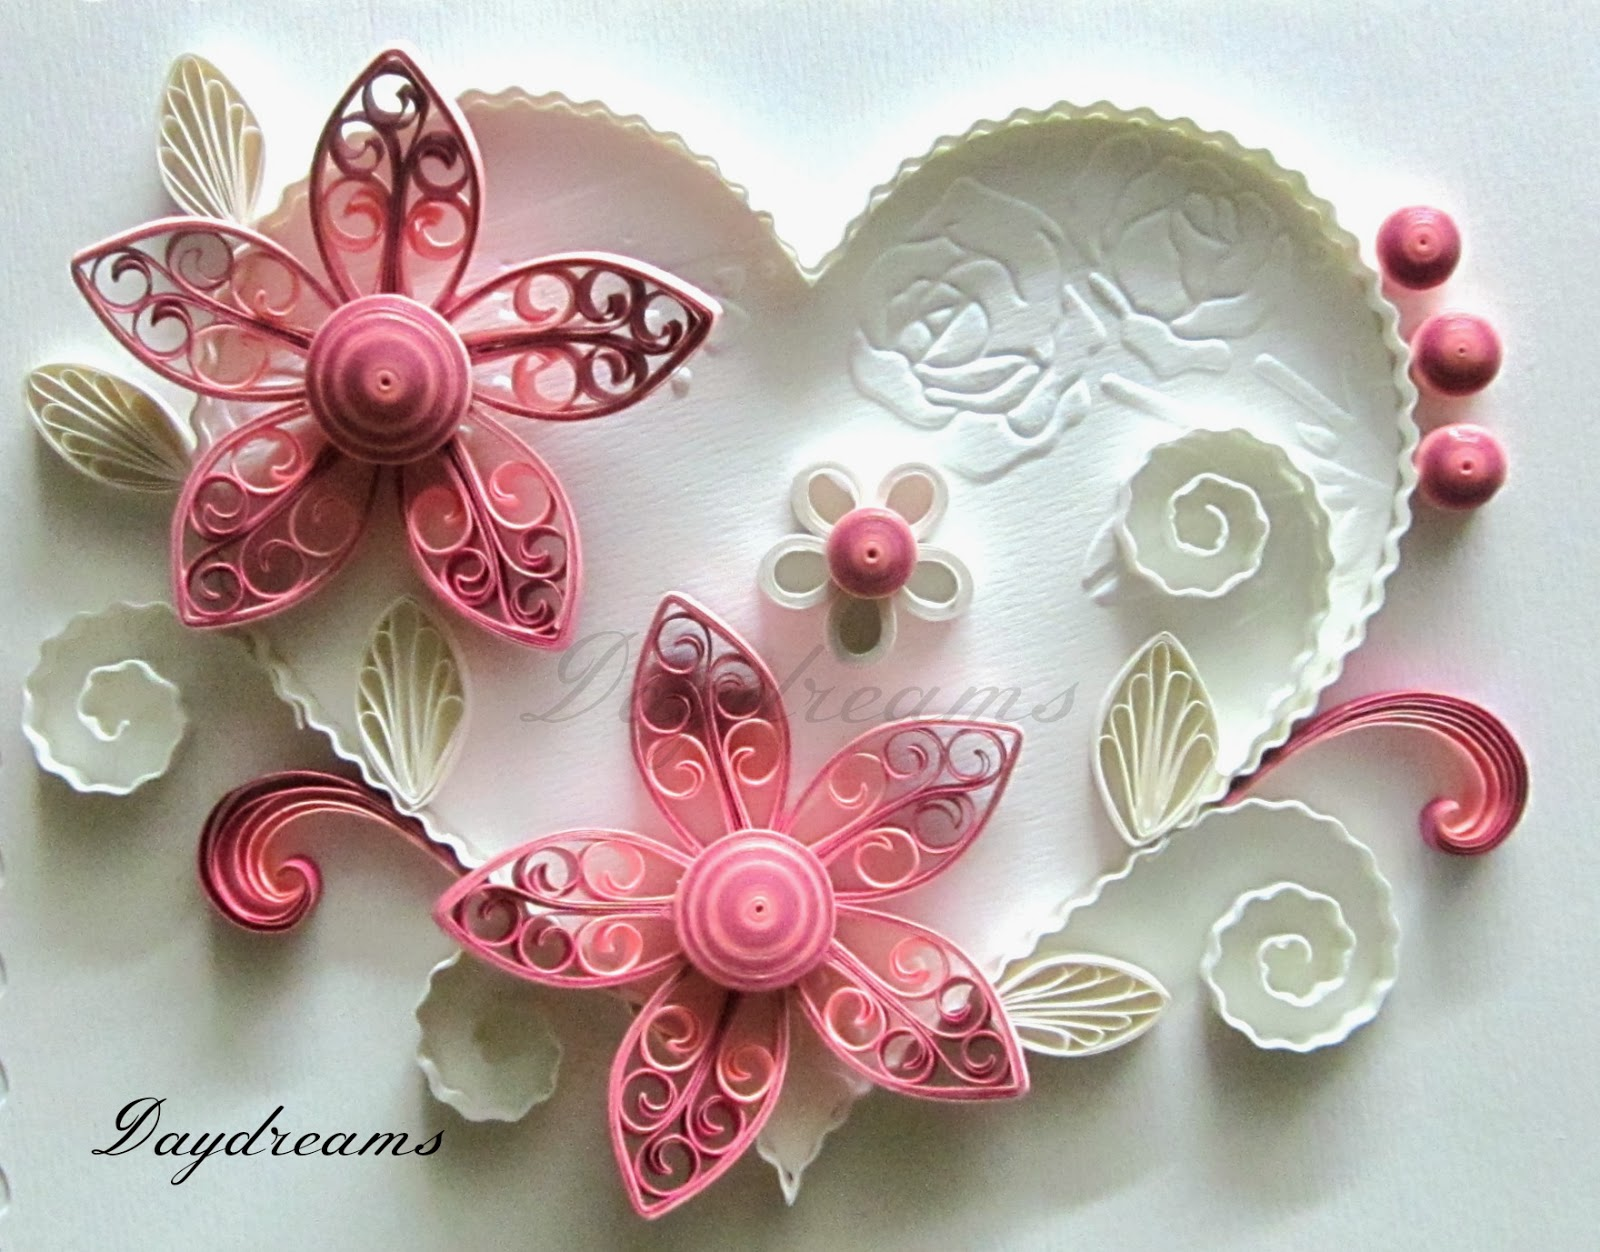 Daydreams Quilled Valentine With Royal Flowers